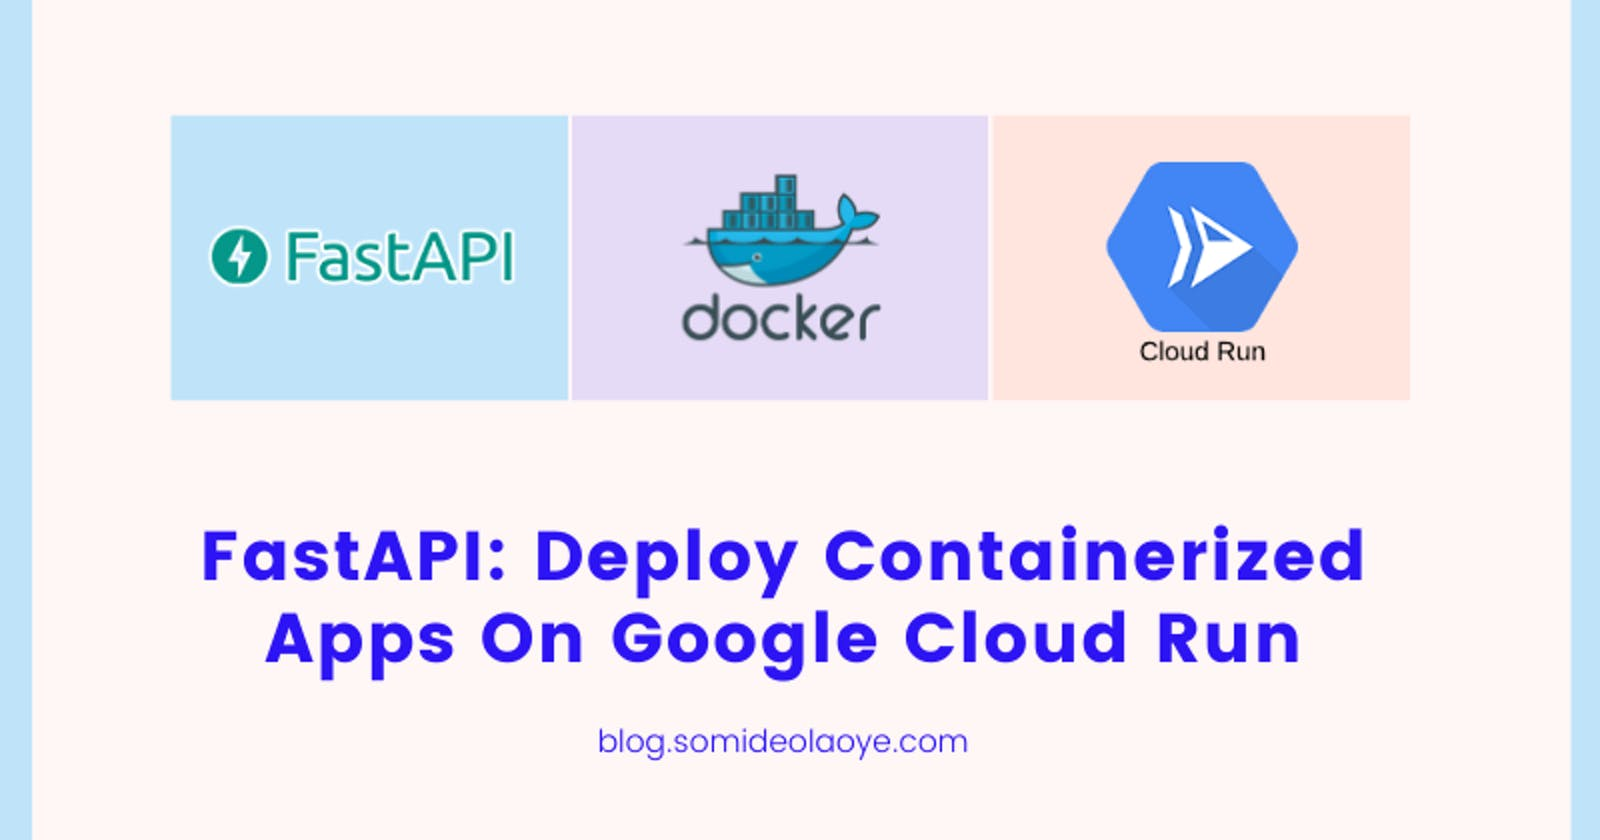 FastAPI: Deploy Containerized Apps On Google Cloud Run